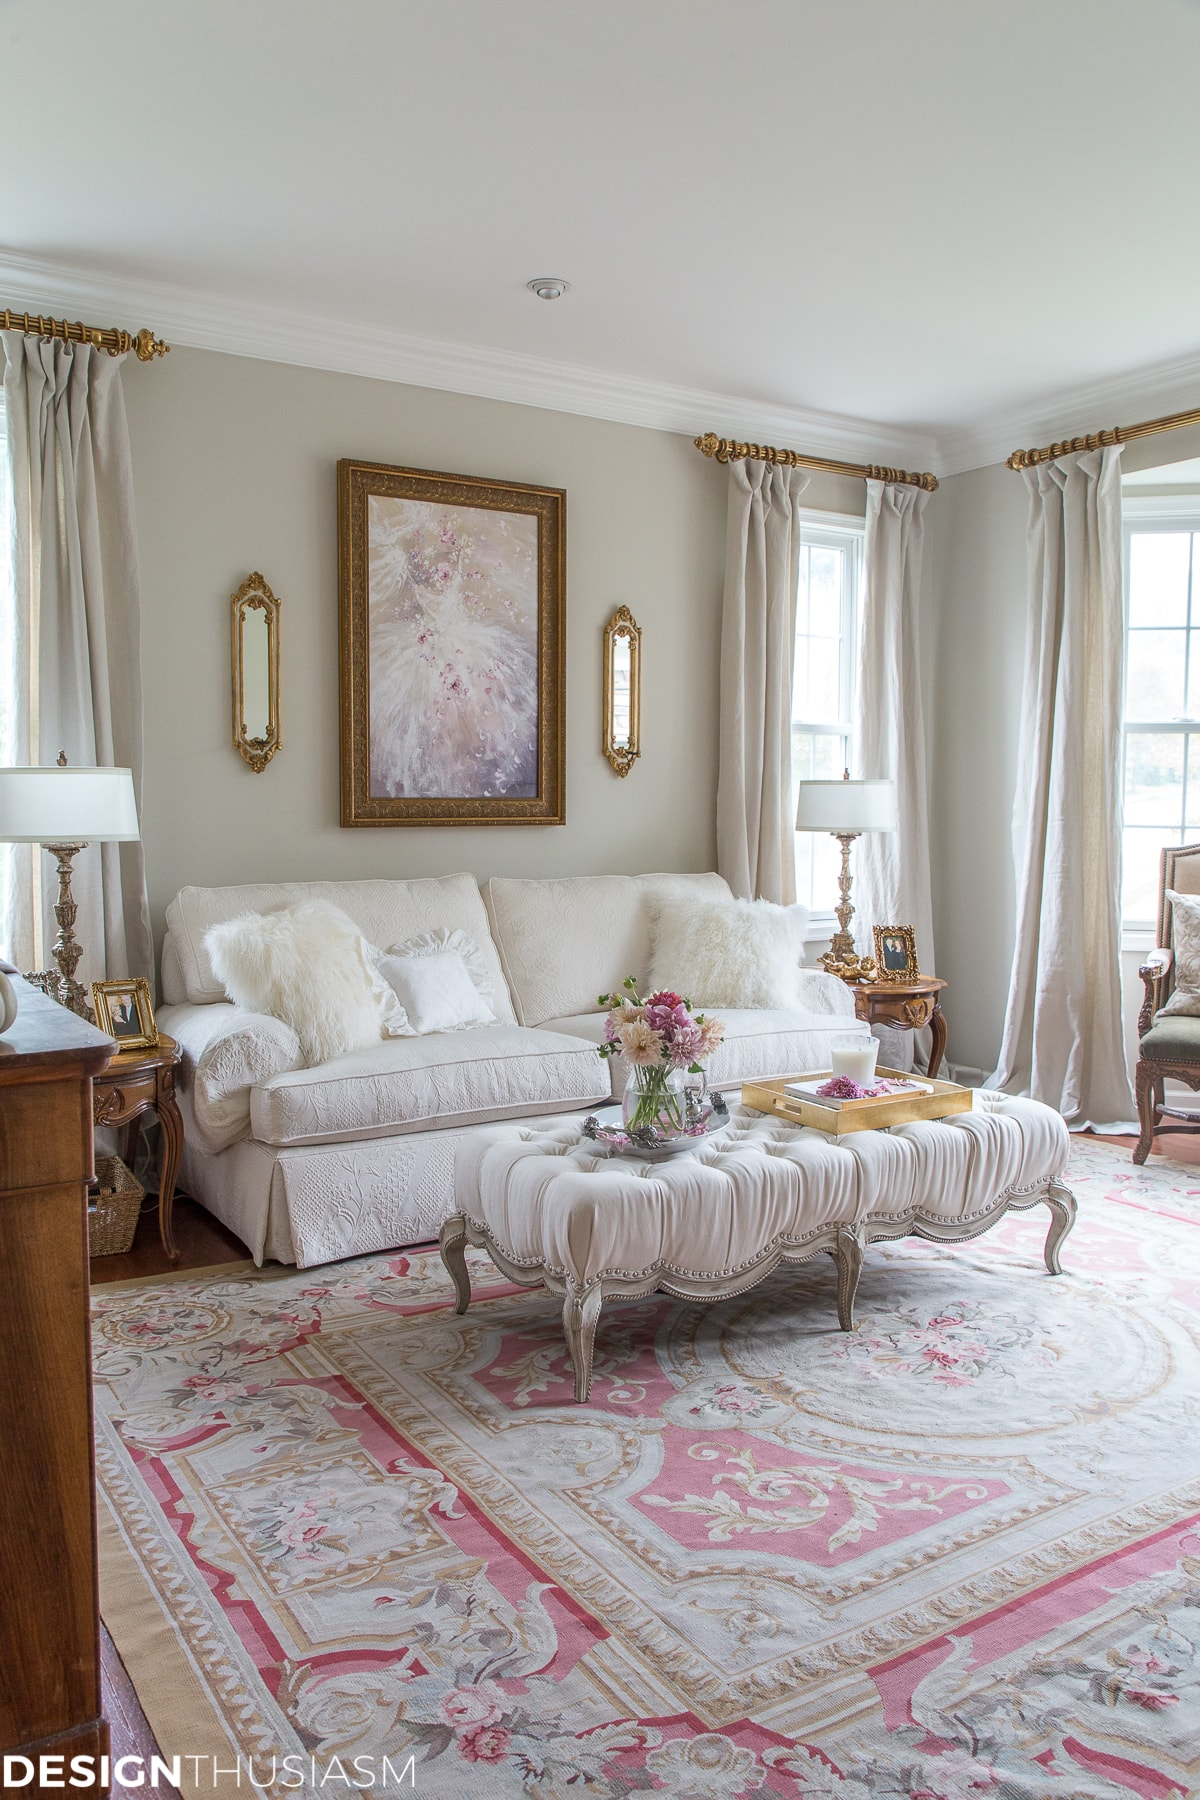 5 Affordable Room Makeovers: How to Modernize French Country Decor